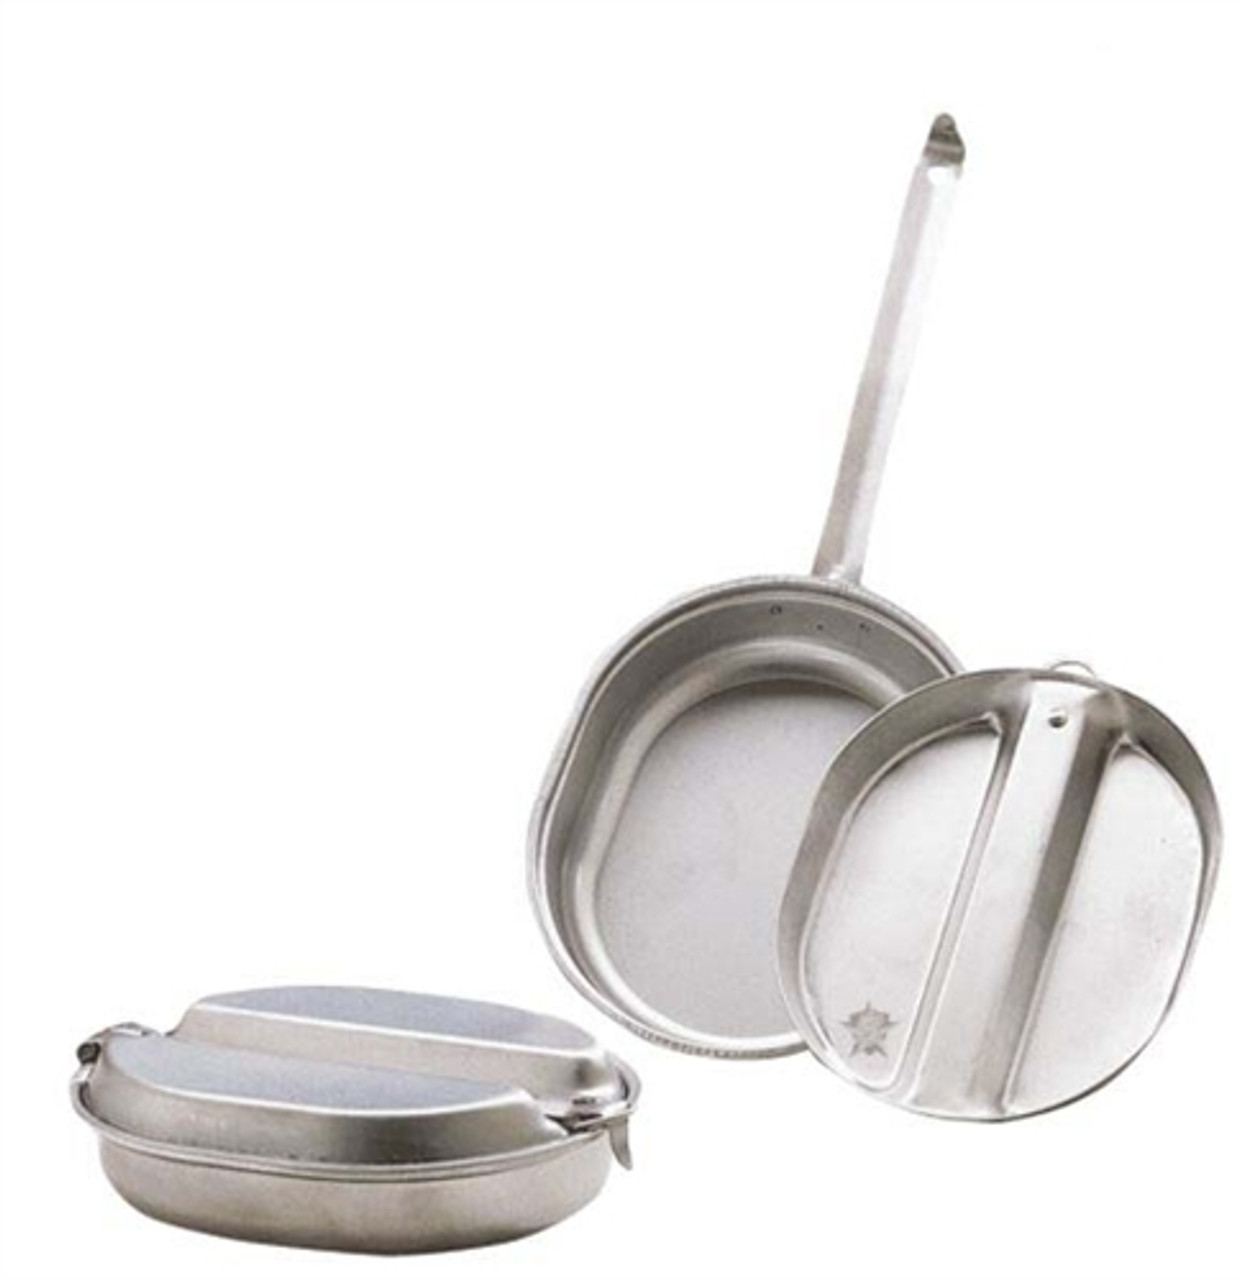 Mess Kit from Hessen Antique